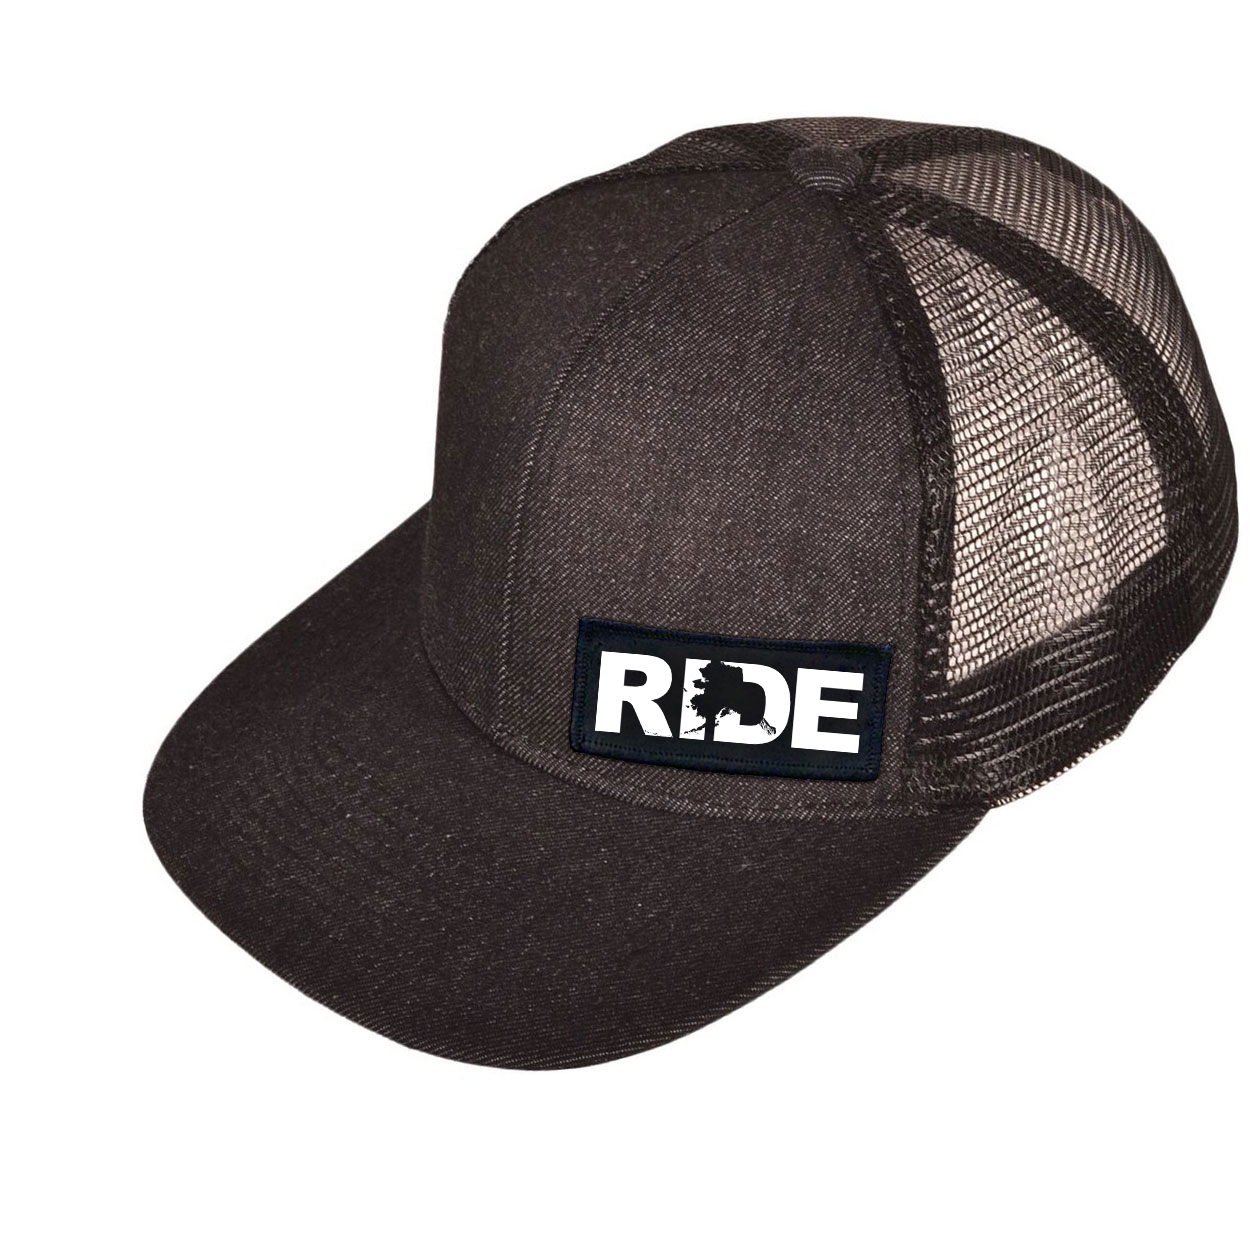 Ride Alaska Night Out Woven Patch Snapback Flat Brim Hat Black Denim (White Logo)